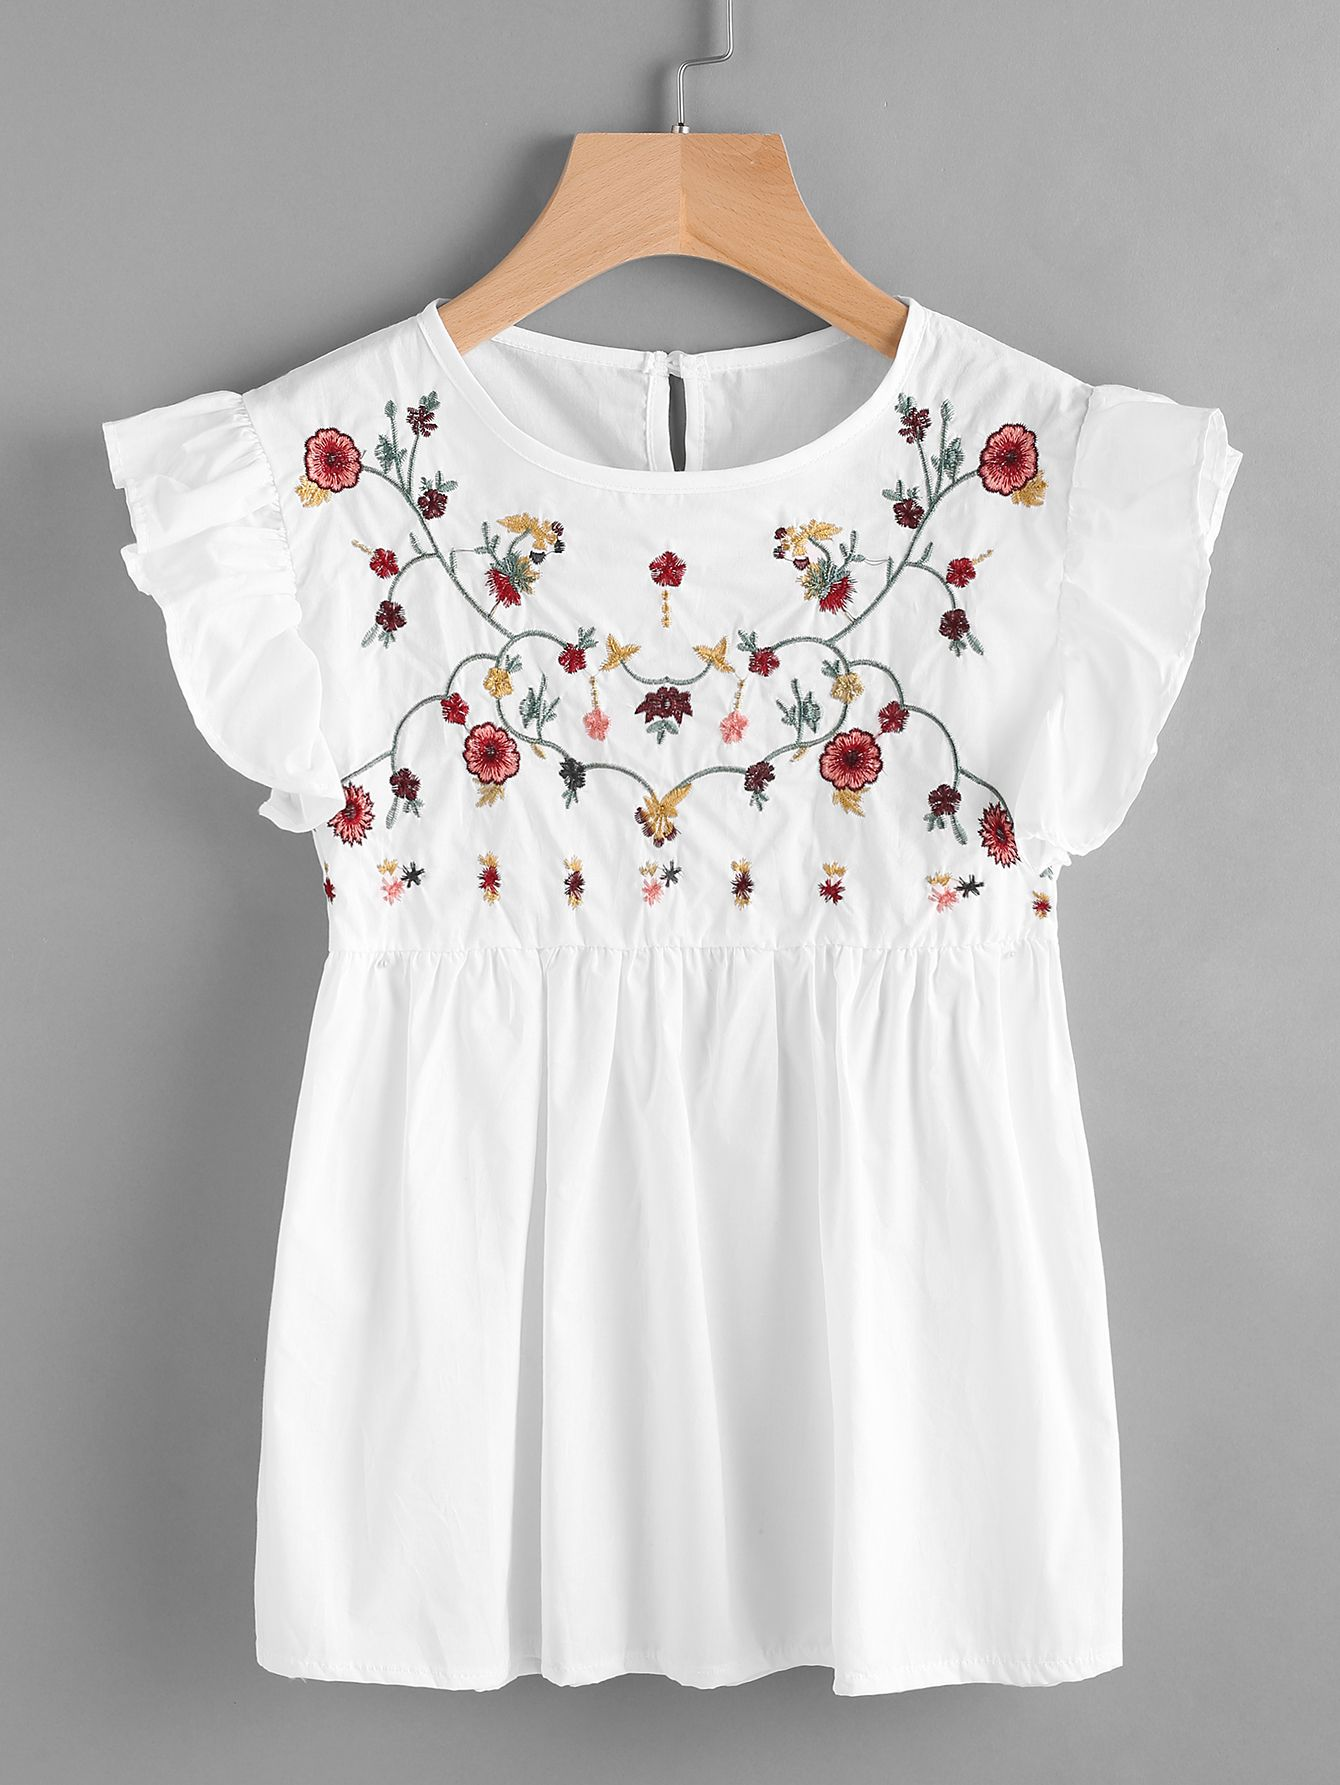 Embroidered Frill Trim Keyhole Back Smock Top | Clothes Shopping And Clothing